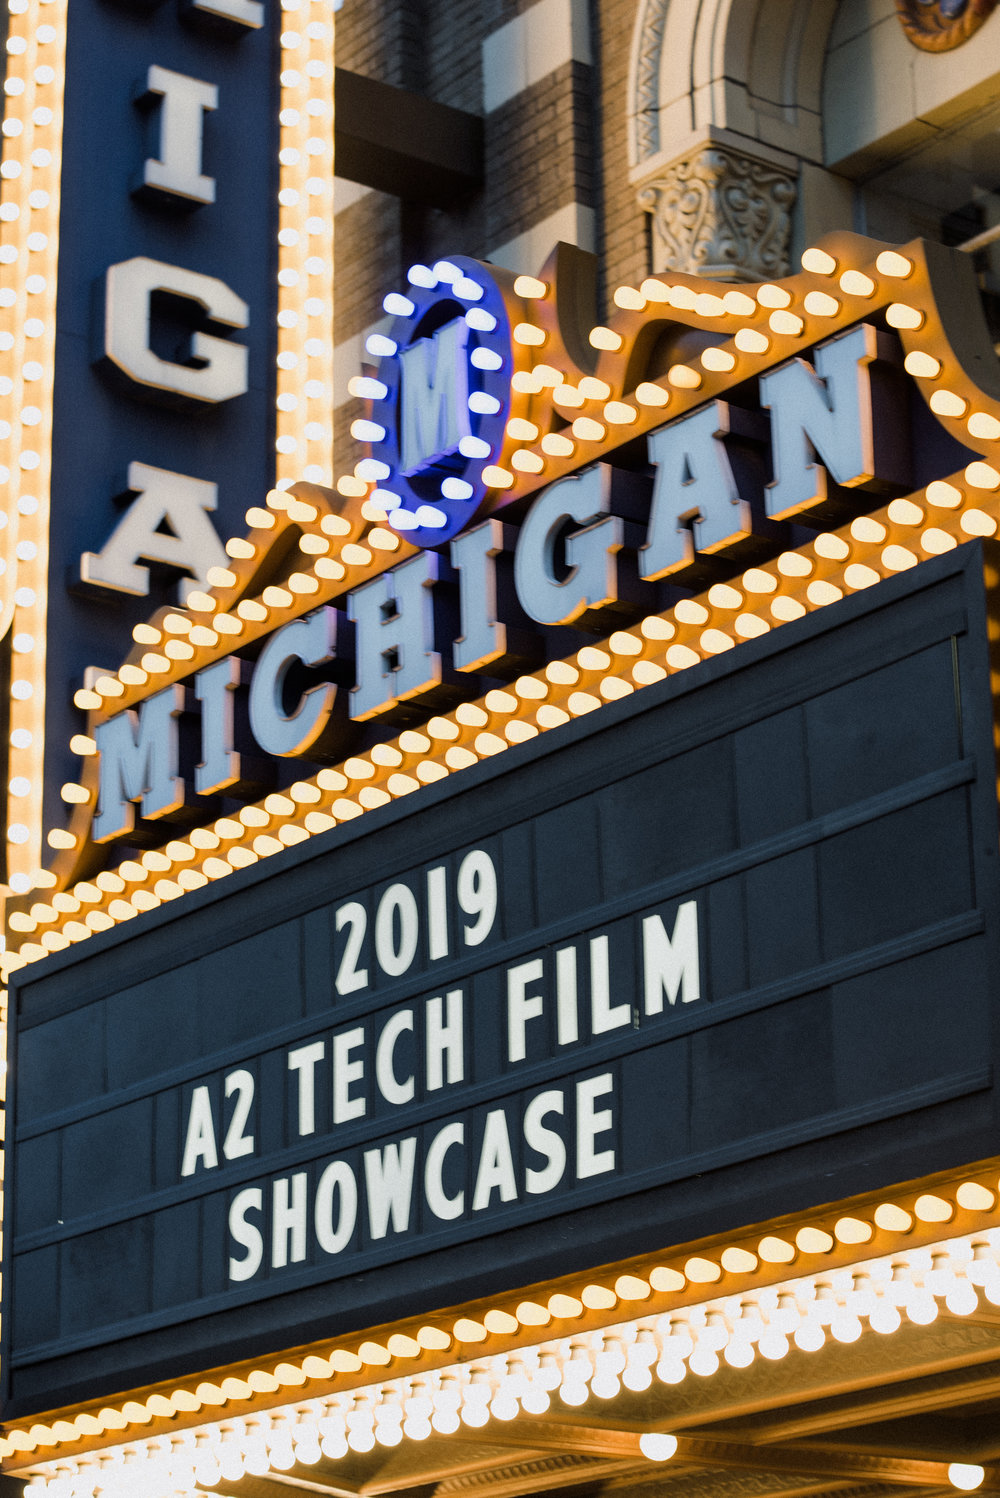 A2_Tech_Film_Fest_1.19.19_Photography_By_Katie_Alexis-143.jpg